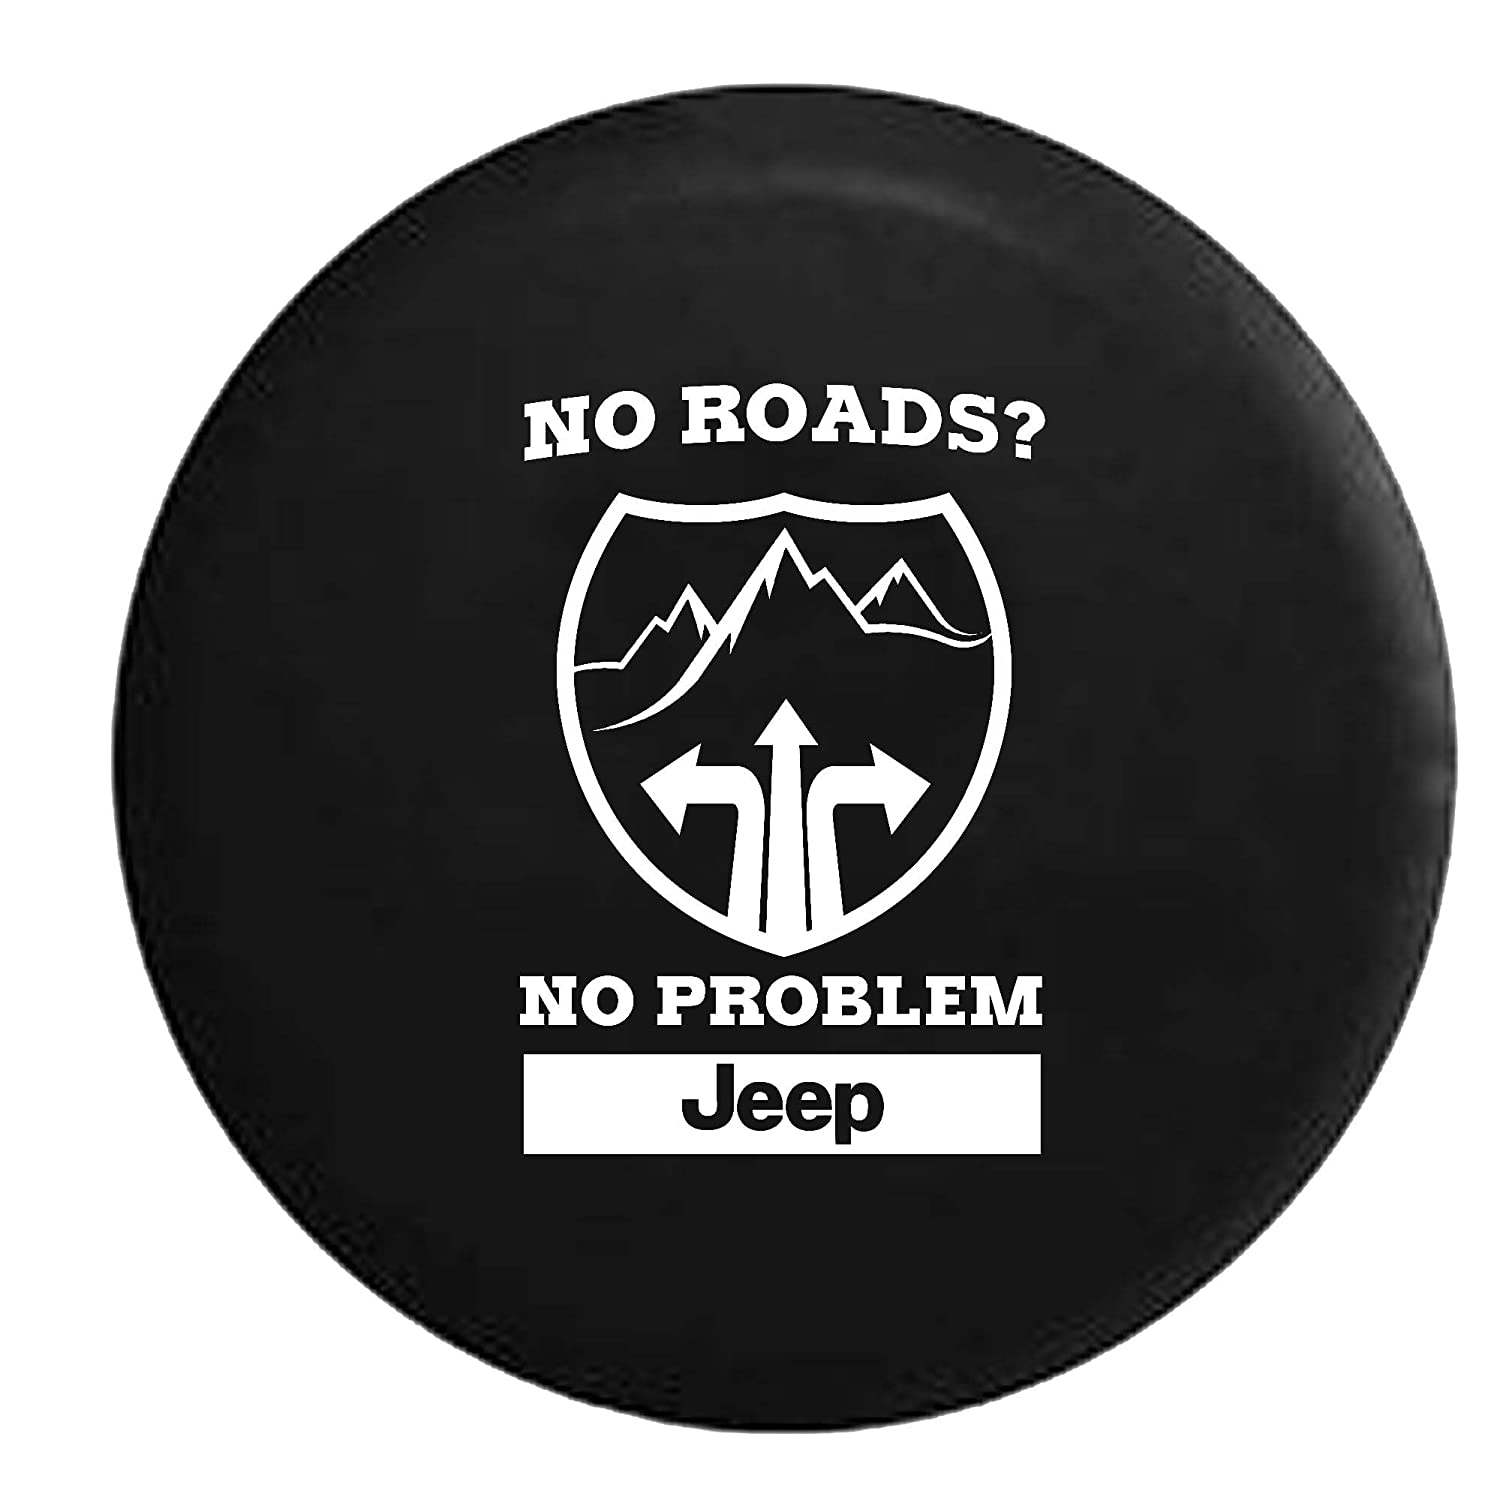 No Roads No Problem Jeep Spare Tire Cover OEM Vinyl Black 34-35 in American Unlimited Gear 4350440361